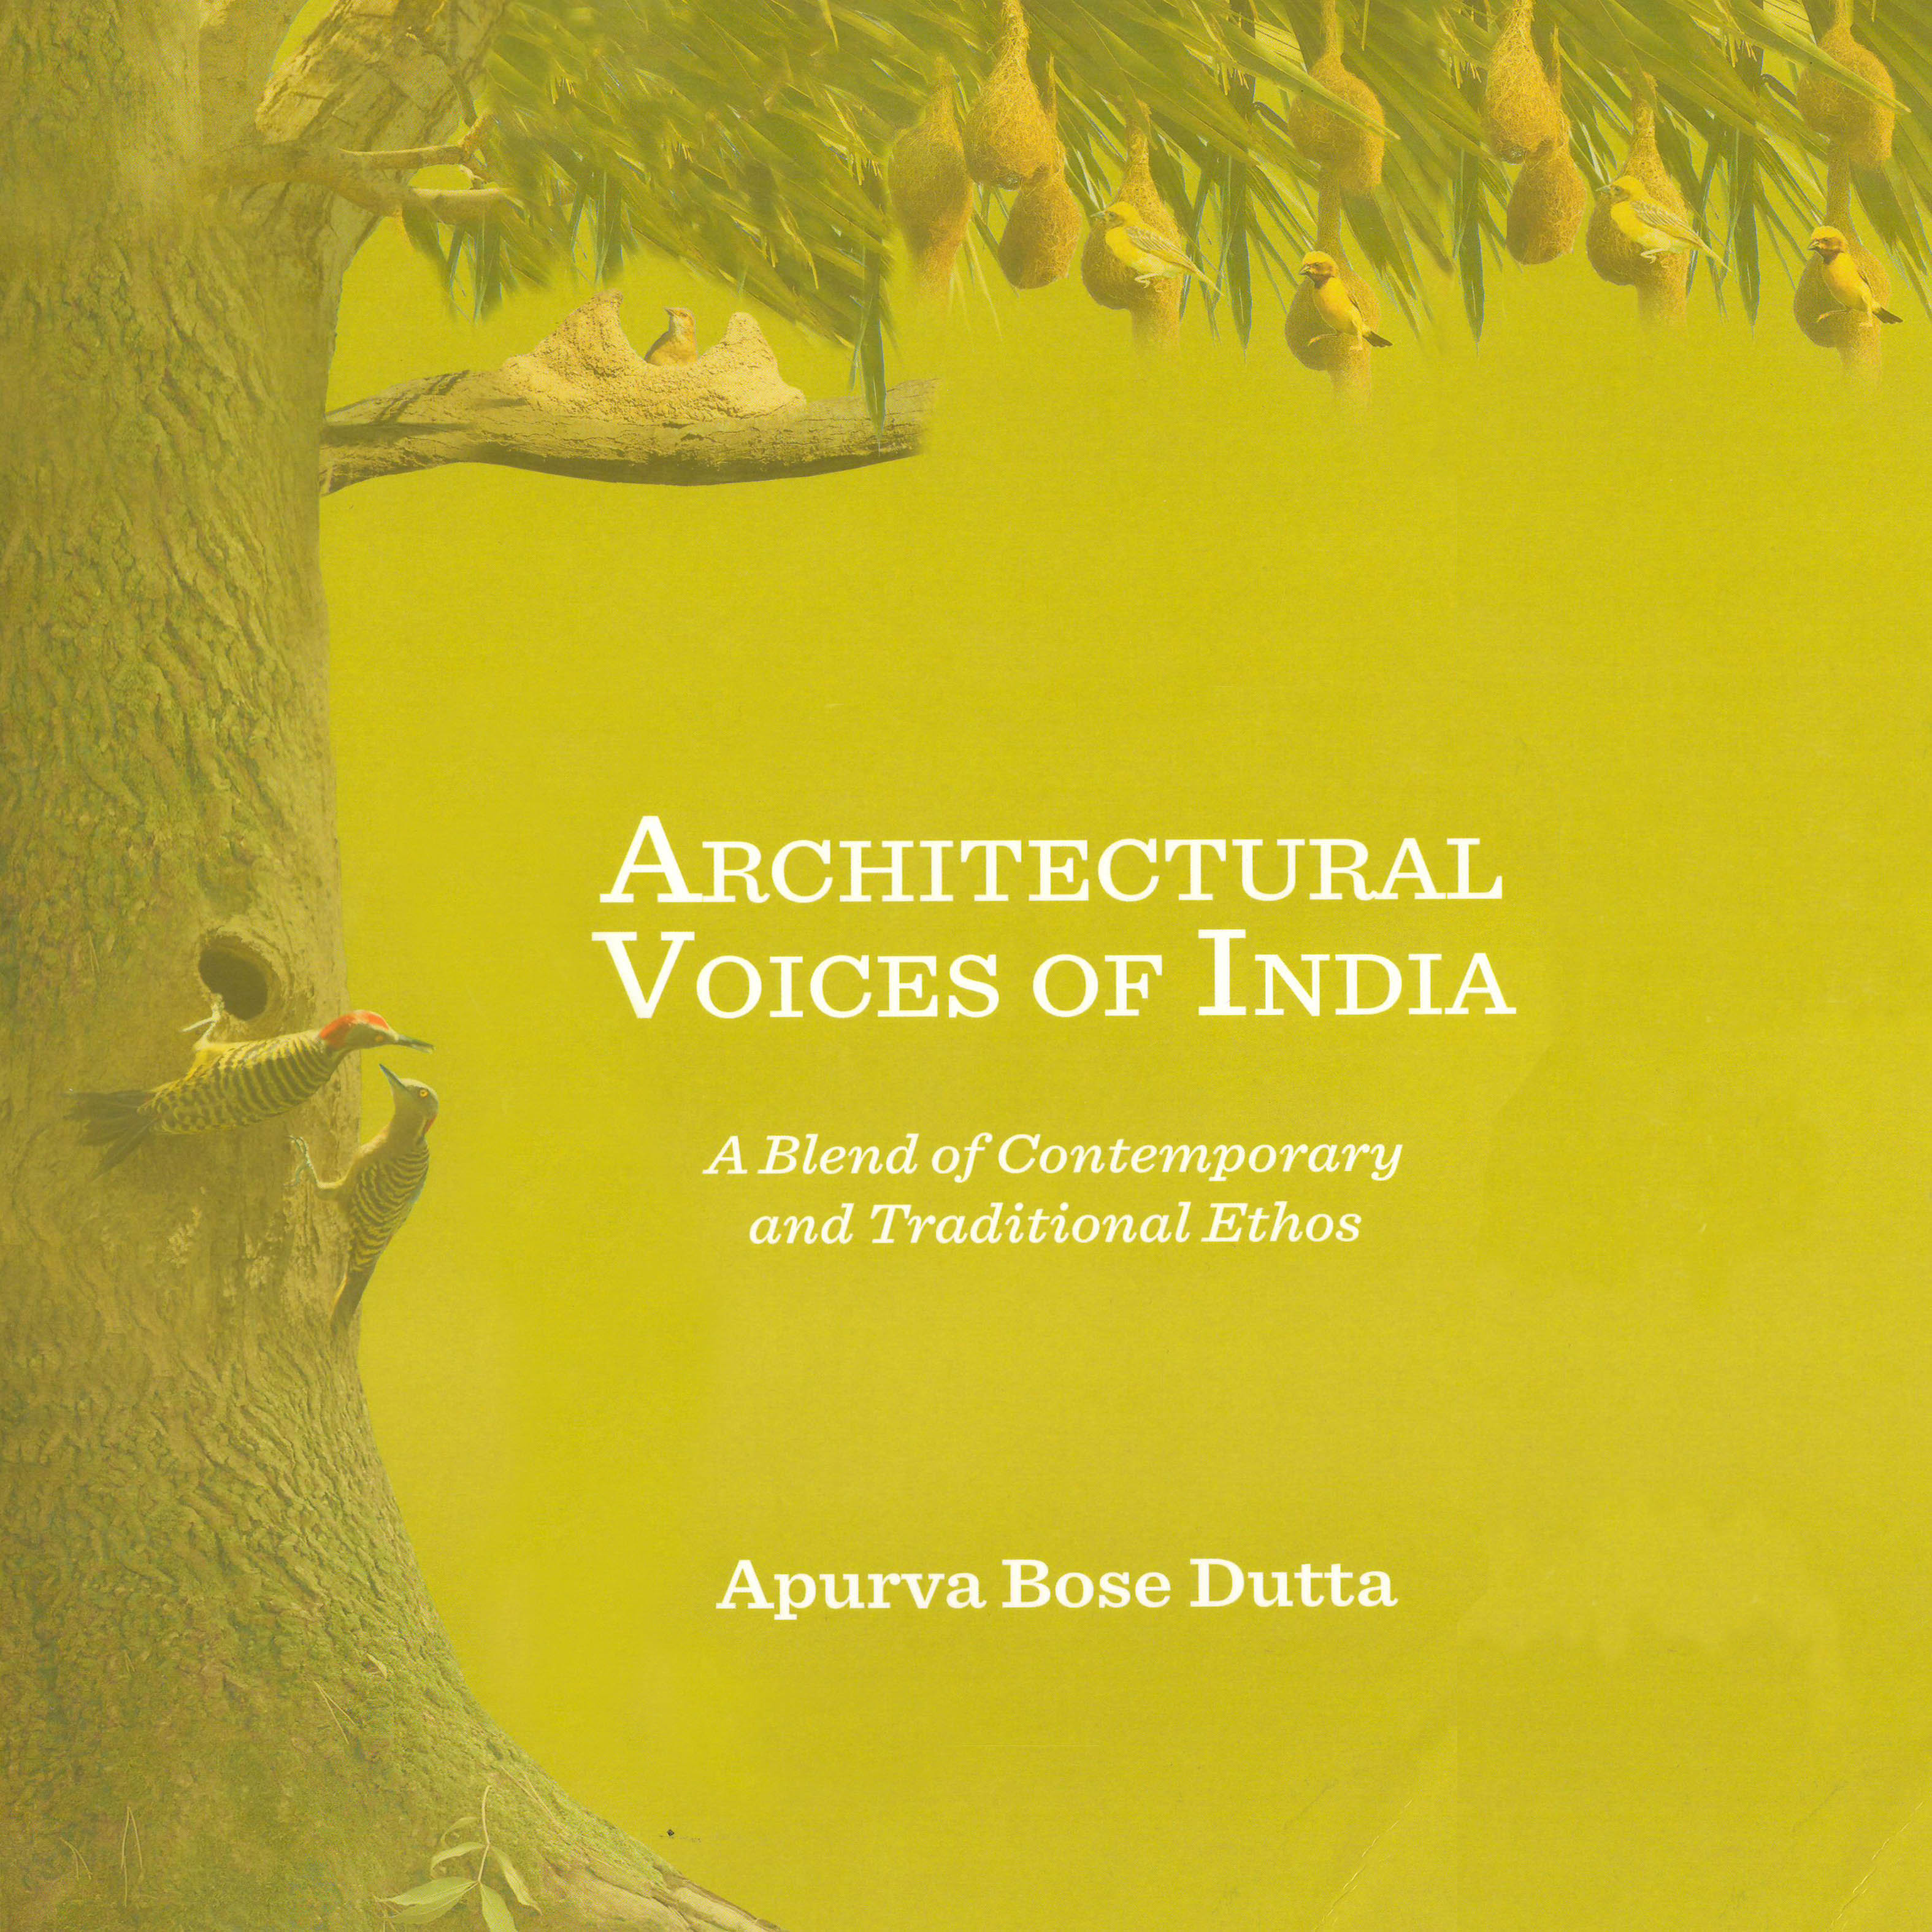 Architectural Voices of India by Apurva Bose Dutta